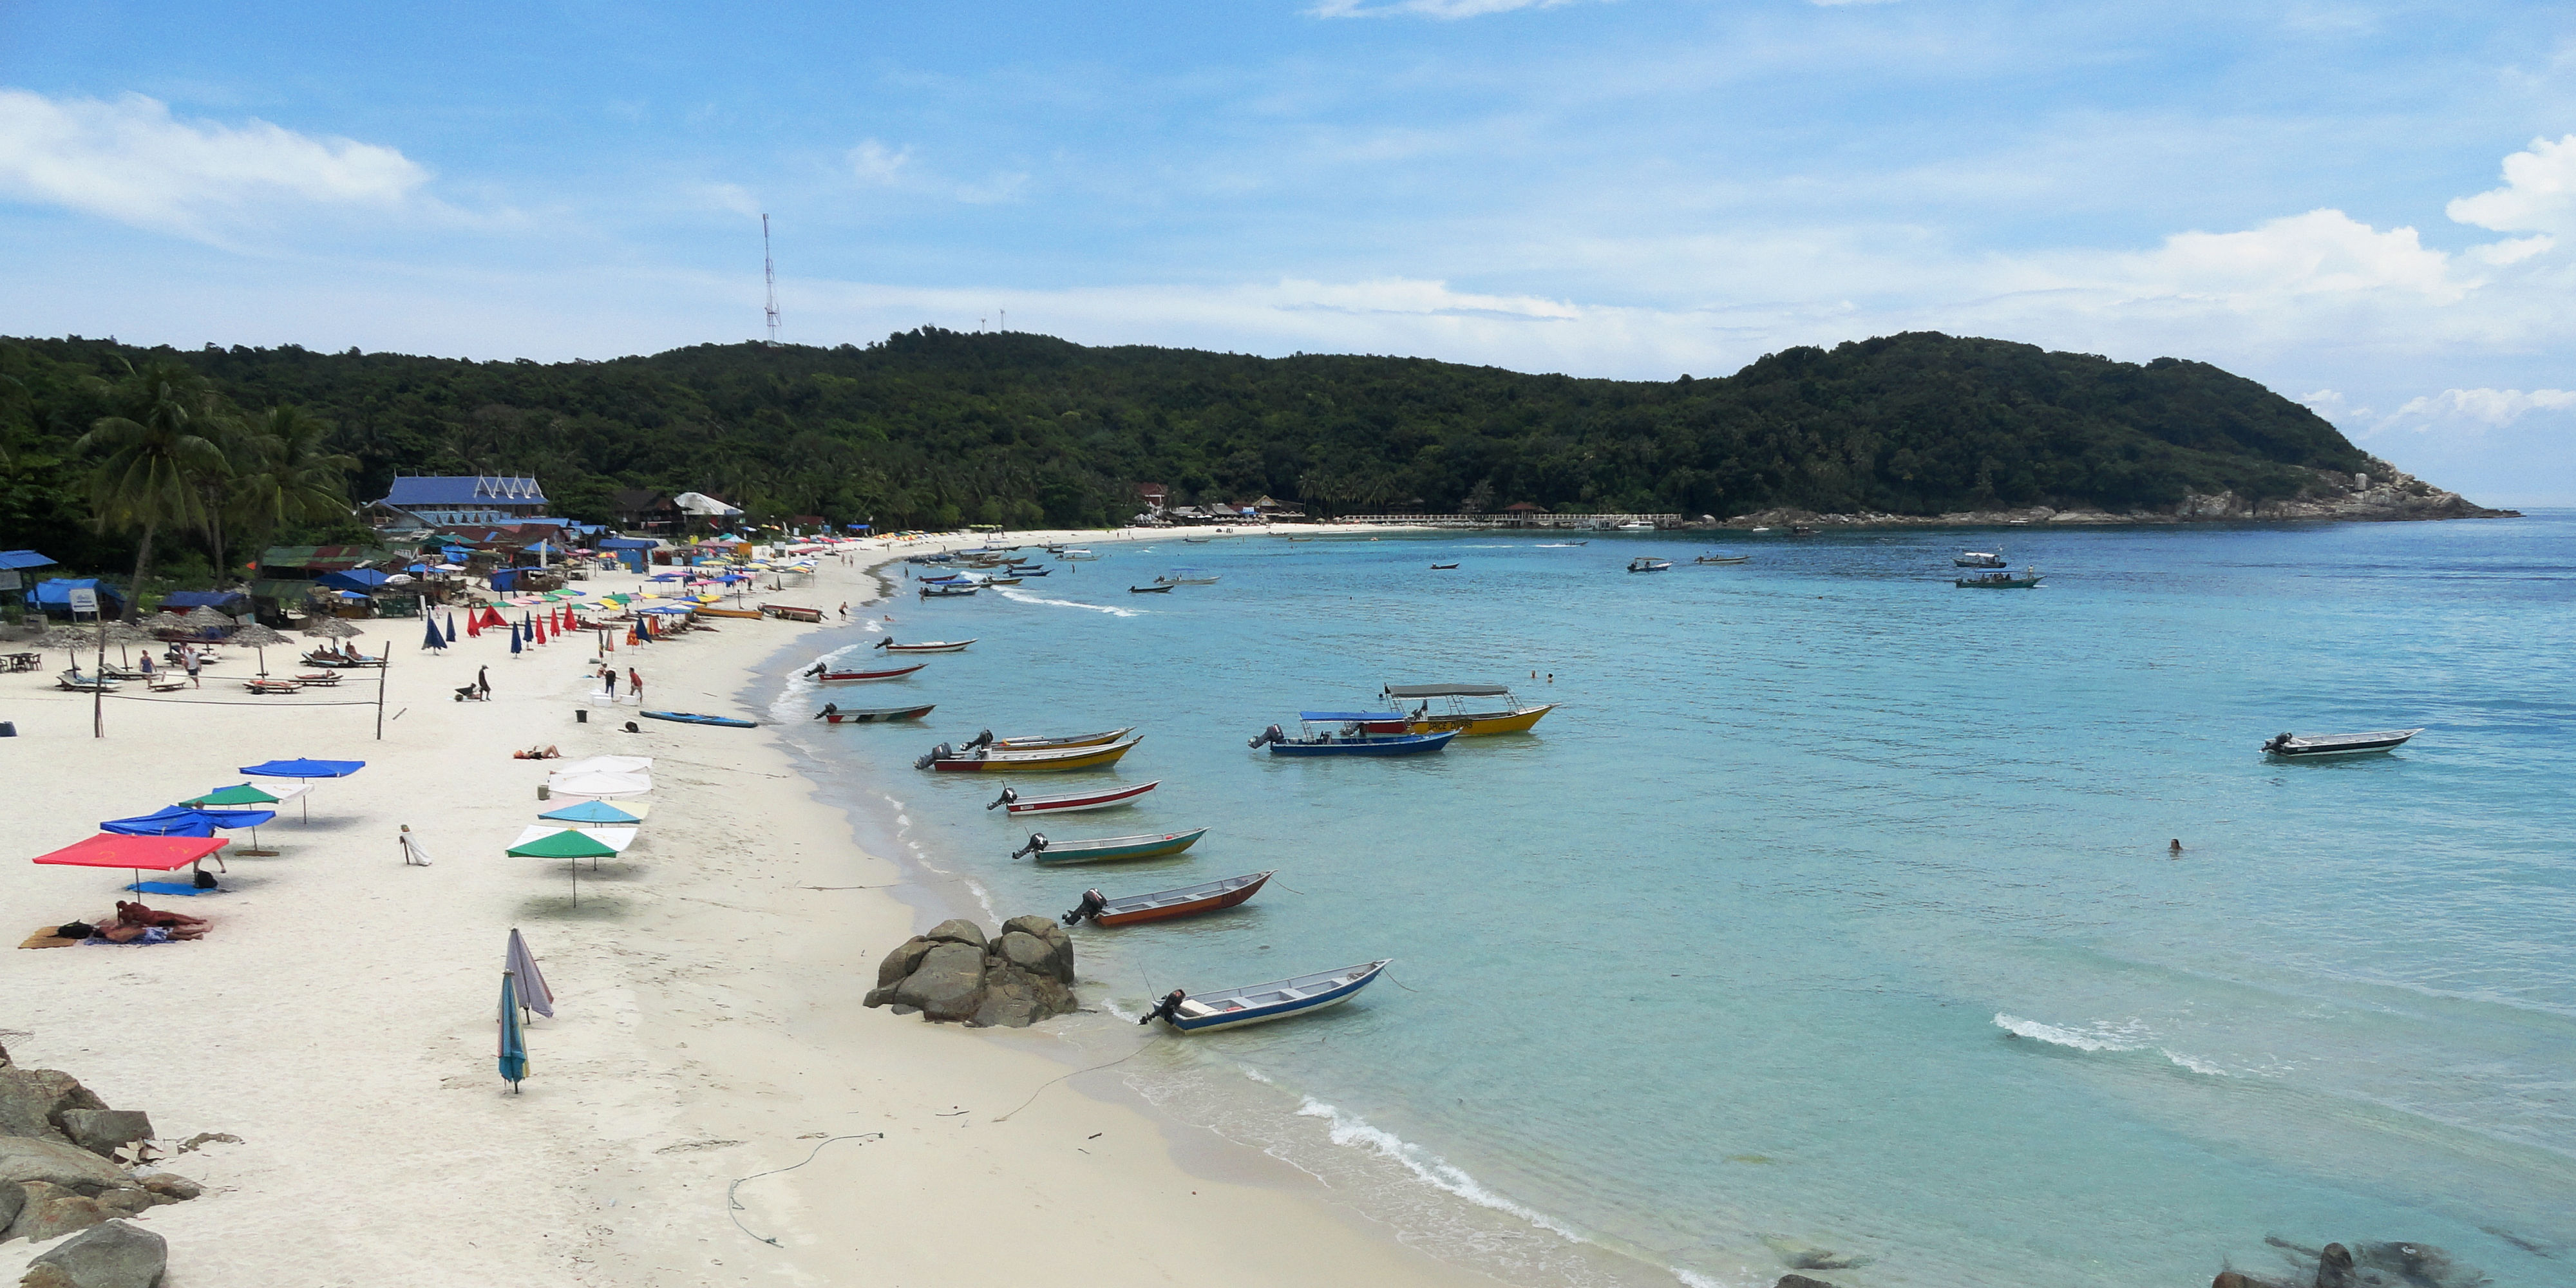 A shot of a beach on the Perhentian Islands shows colourful fishing boats and ebach umbrellas. By promoting sustainable tourism, scenes like this will remain untarnished.